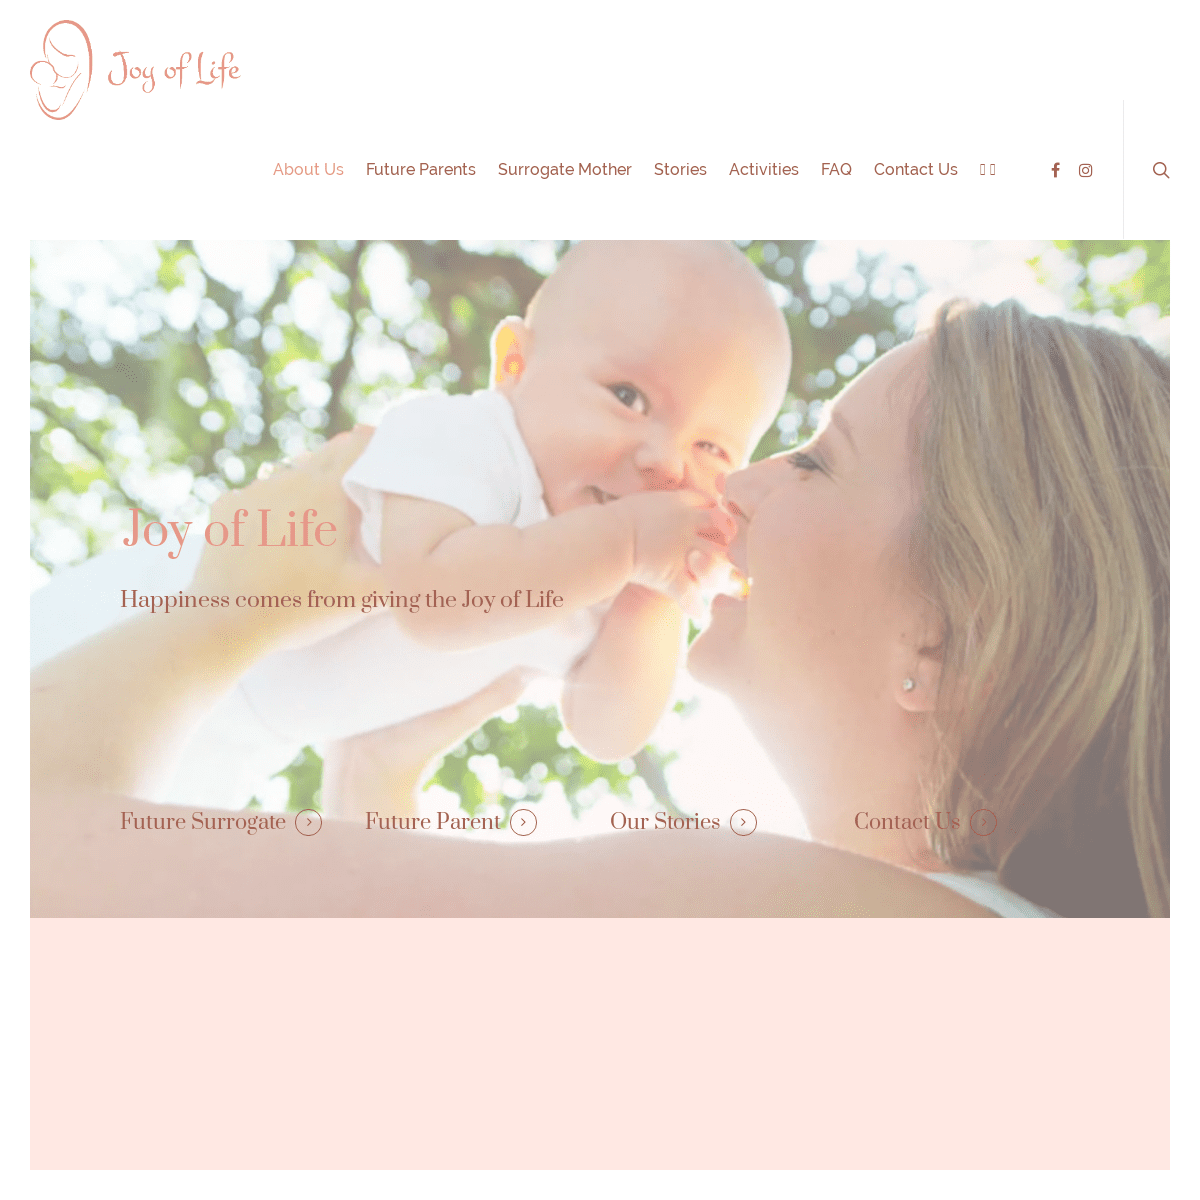 Become Surrogate - Surrogate Mother Wanted - Joy of Life Surrogacy